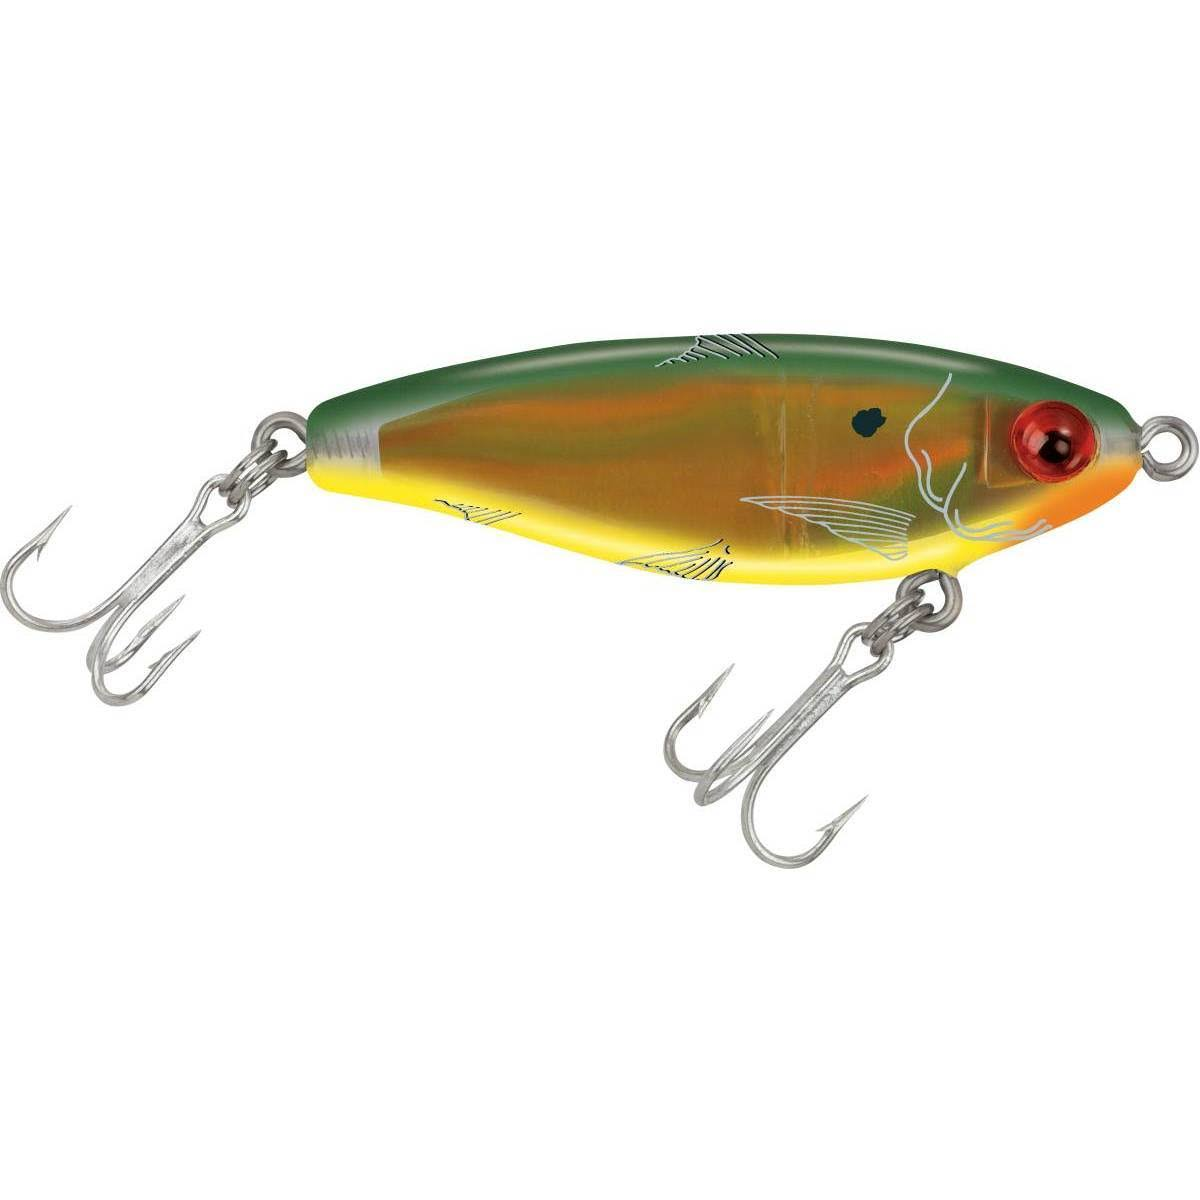 "Mirrodine Suspending Twitchbait, 2.62"", 3/8 oz"